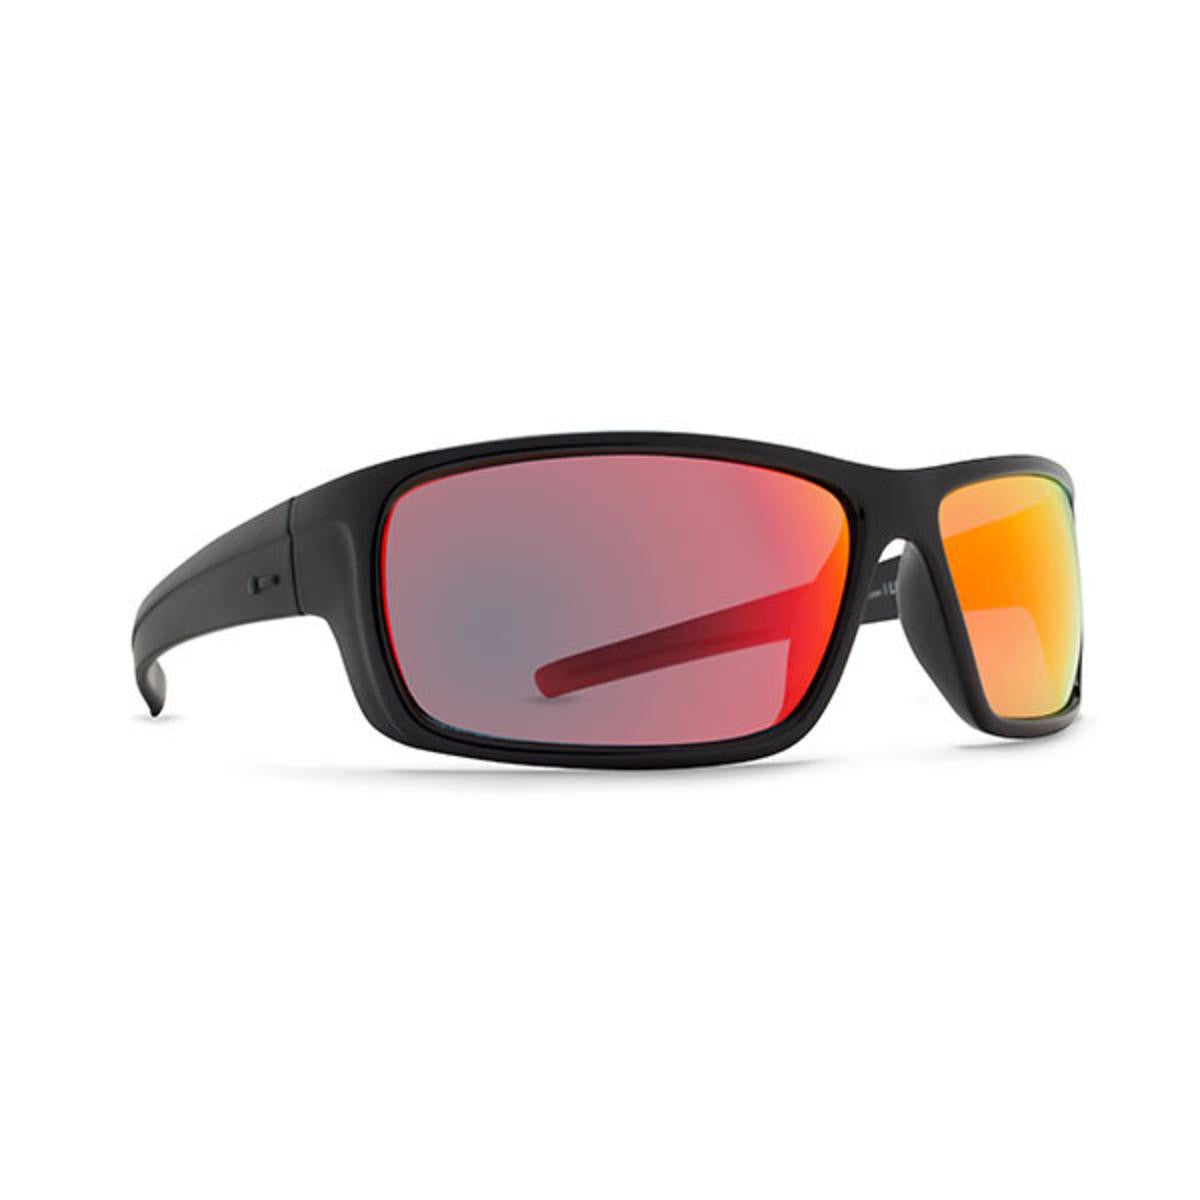 Dot Dash Lil Dyno Sunglasses